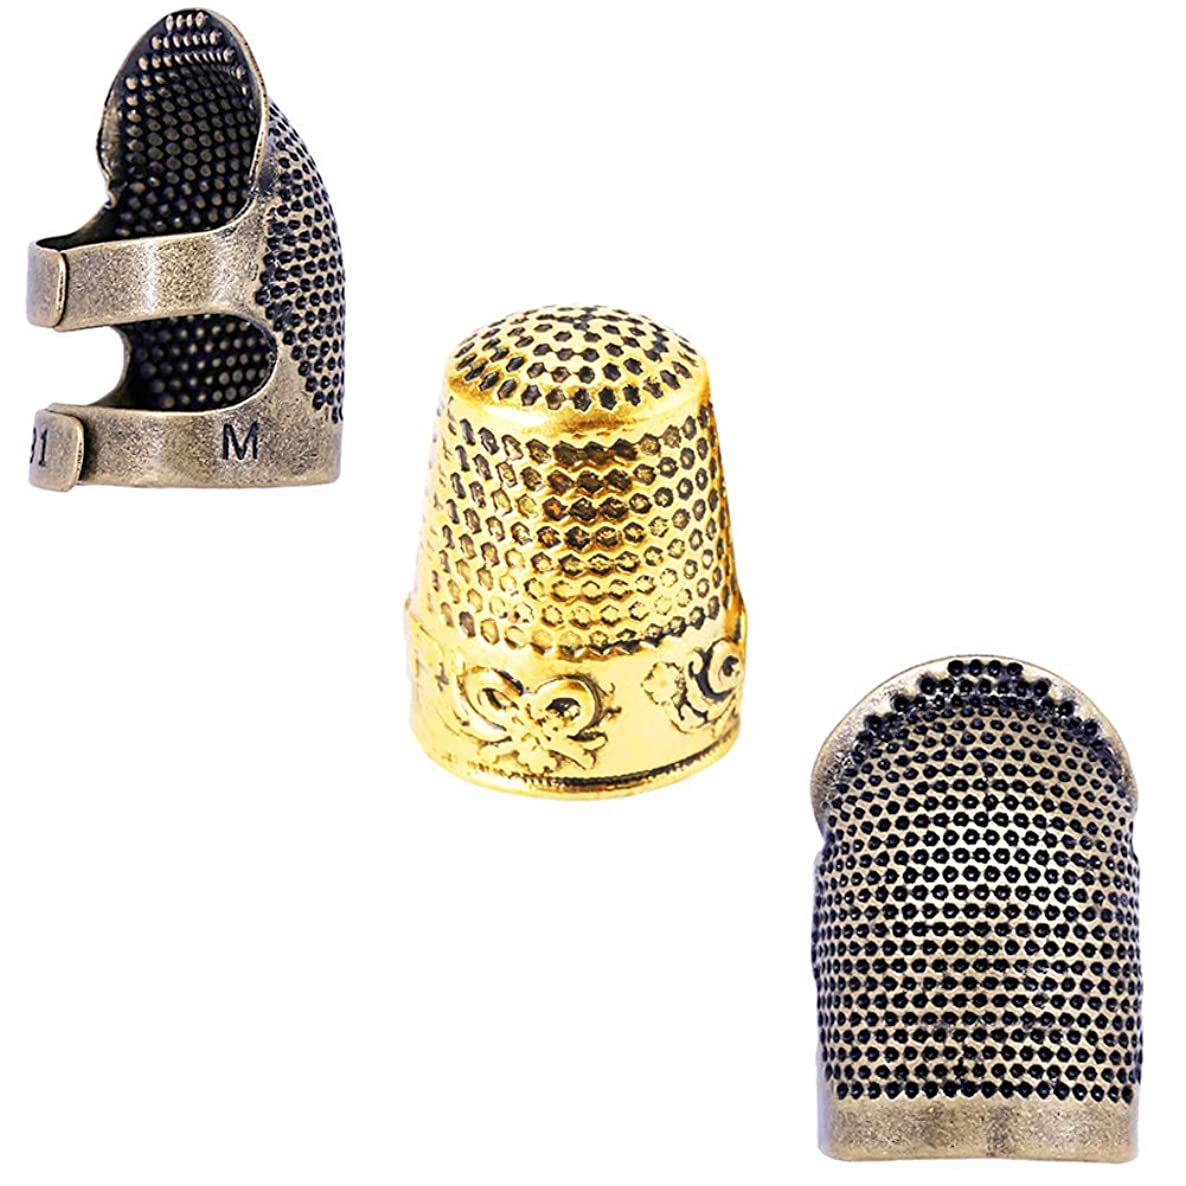 3 Pcs Sewing Thimble Finger Protector, Adjustable Fingertip Thimble Metal Shield Protector Pin Needles Sewing Quilting Craft Accessories DIY Sewing Tools